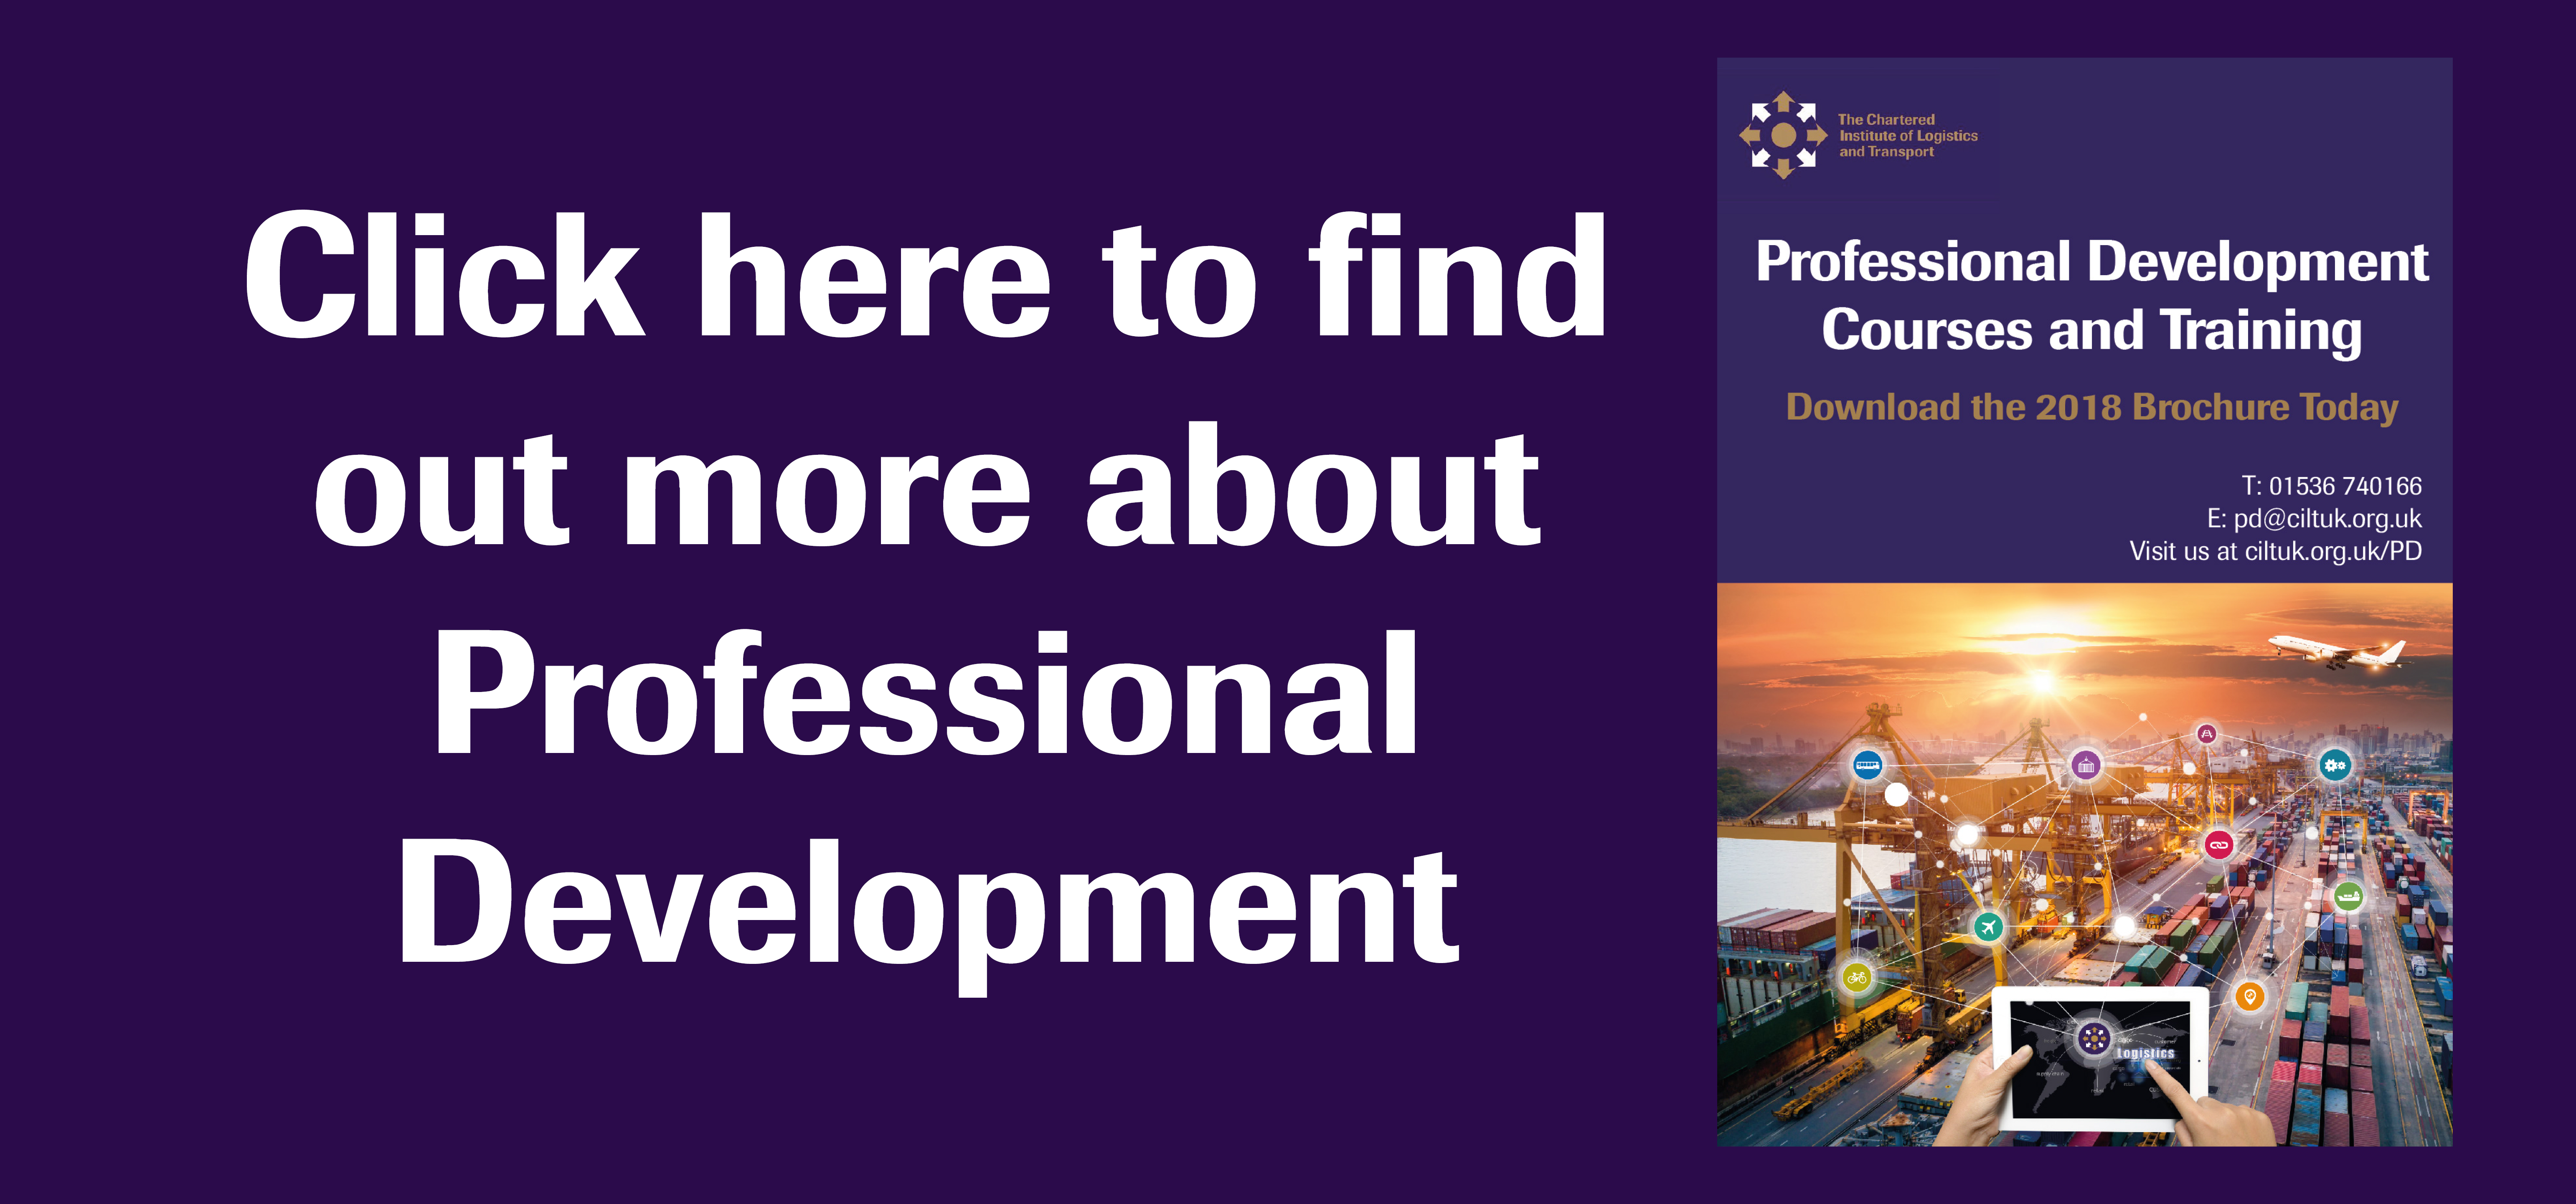 Professional Development Graphic Homepage 2019